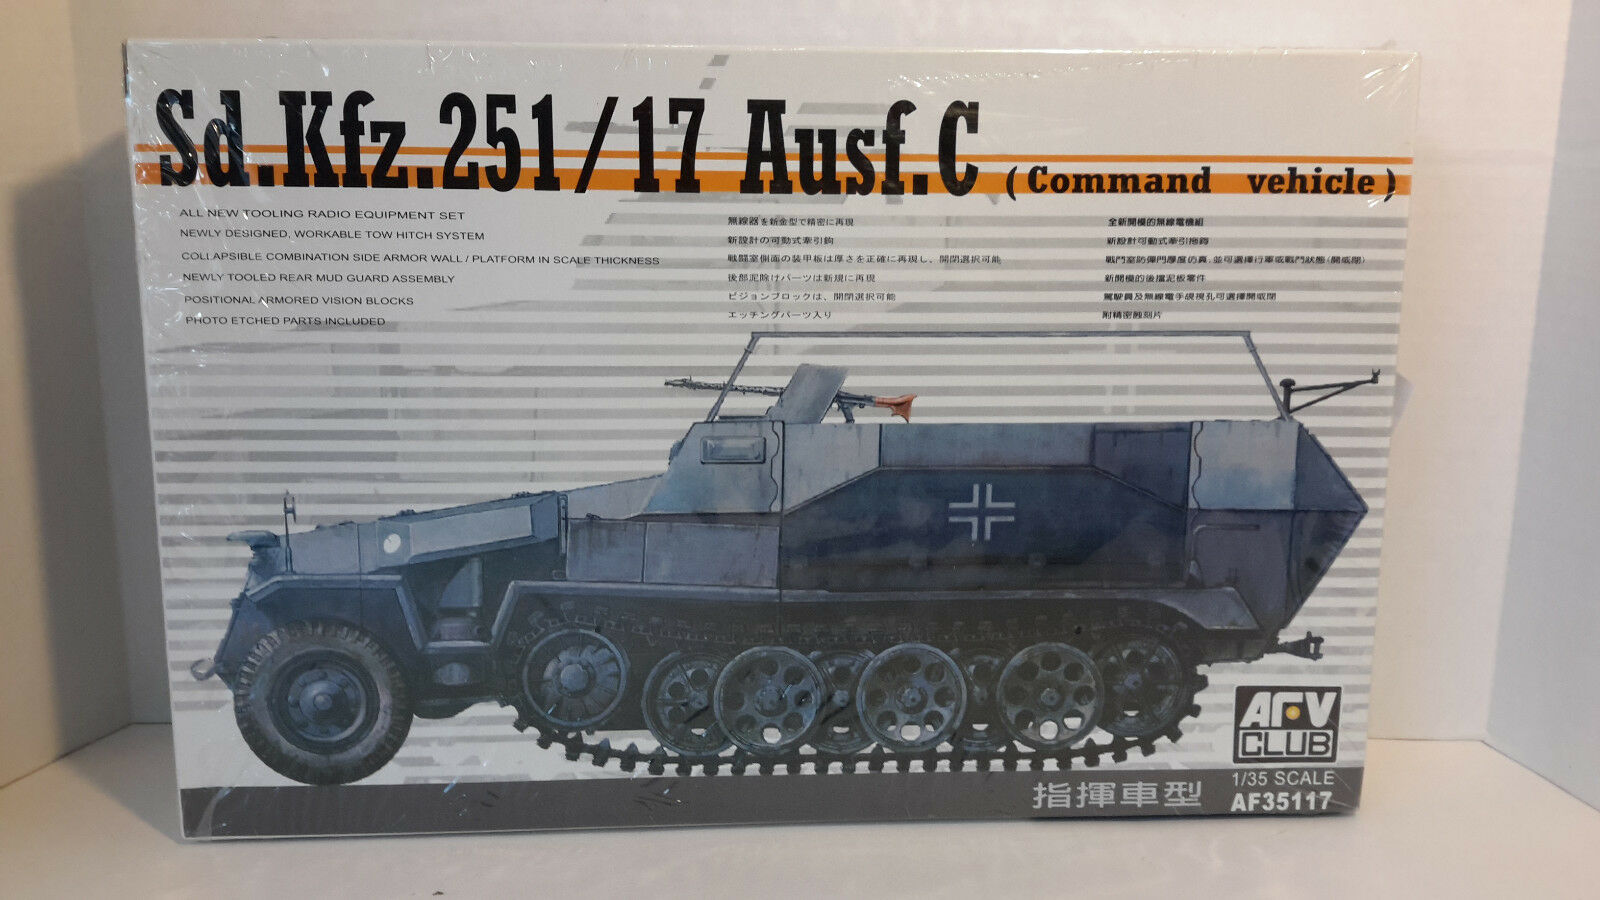 1 35 Scale AFV Club 'Sd.Kfz.251 17 Ausf.C Command Vehicle' Item